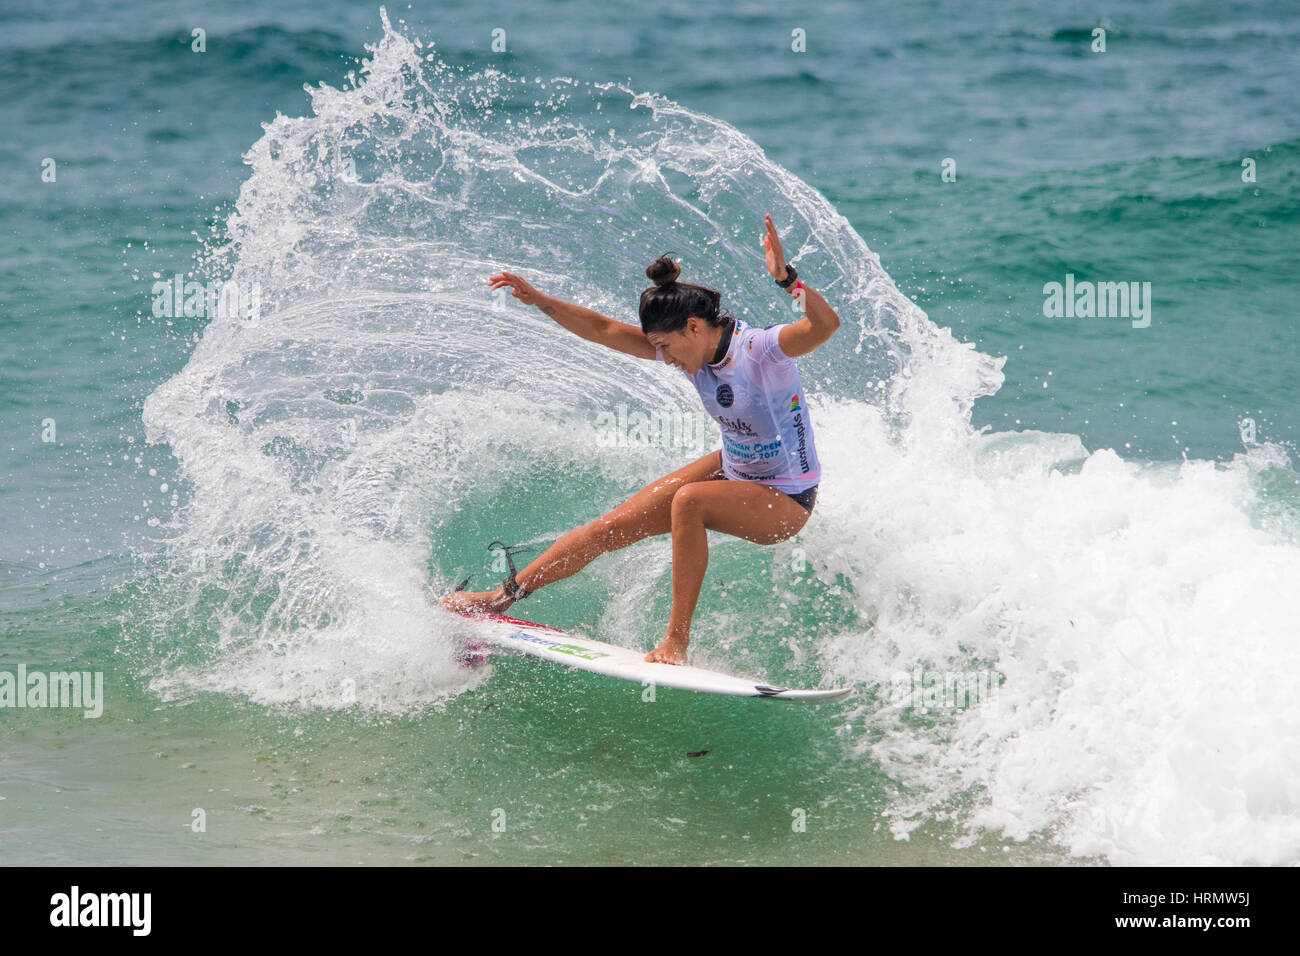 Sydney, Australia - 3rd March 2017: Australian Open of Surfing Sports Event at Manly Beach, Australia featuring - Stock Image